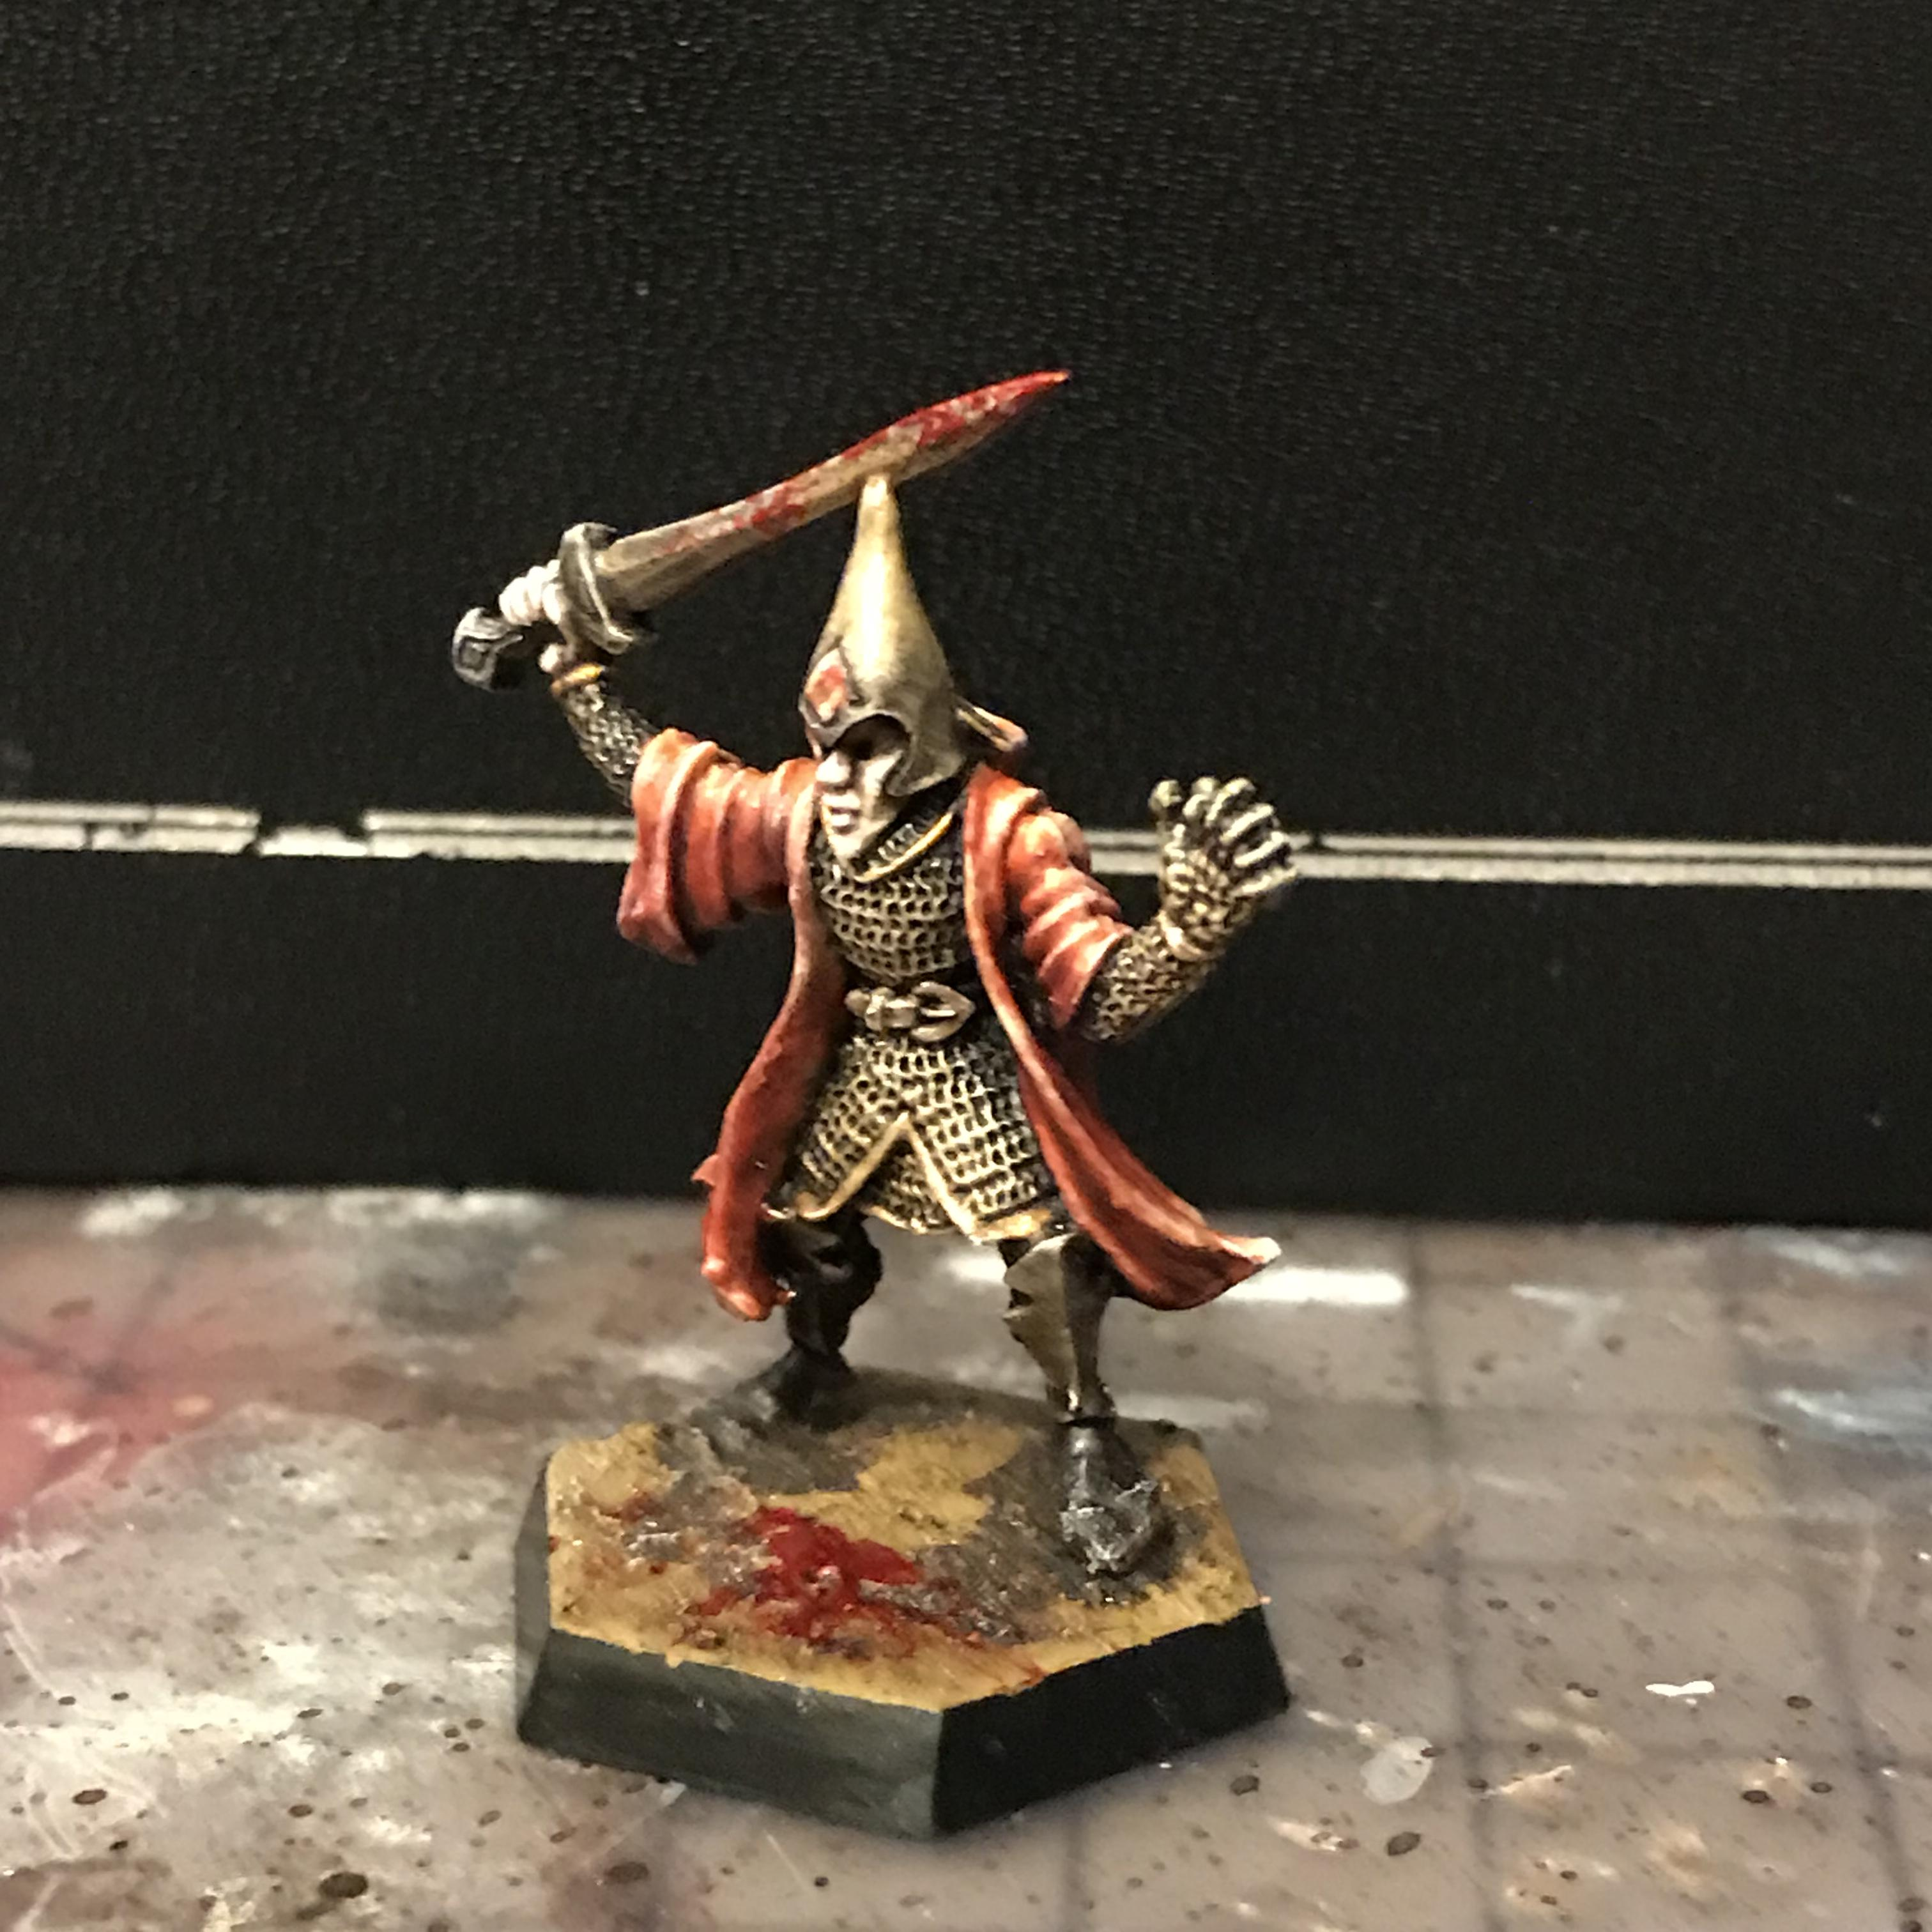 Champion, Chaos, Citadel, Corum, Eternal, Fj, Hand, In, Irsei, Jhaelen, Mage, Mini, Miniature, Moorcock, Oldhammer, Prince, Robe, Roleplay, Scarlet, Silver, Sorcerer, The, Vadhagh, Warhammer Fantasy, With, Wizard